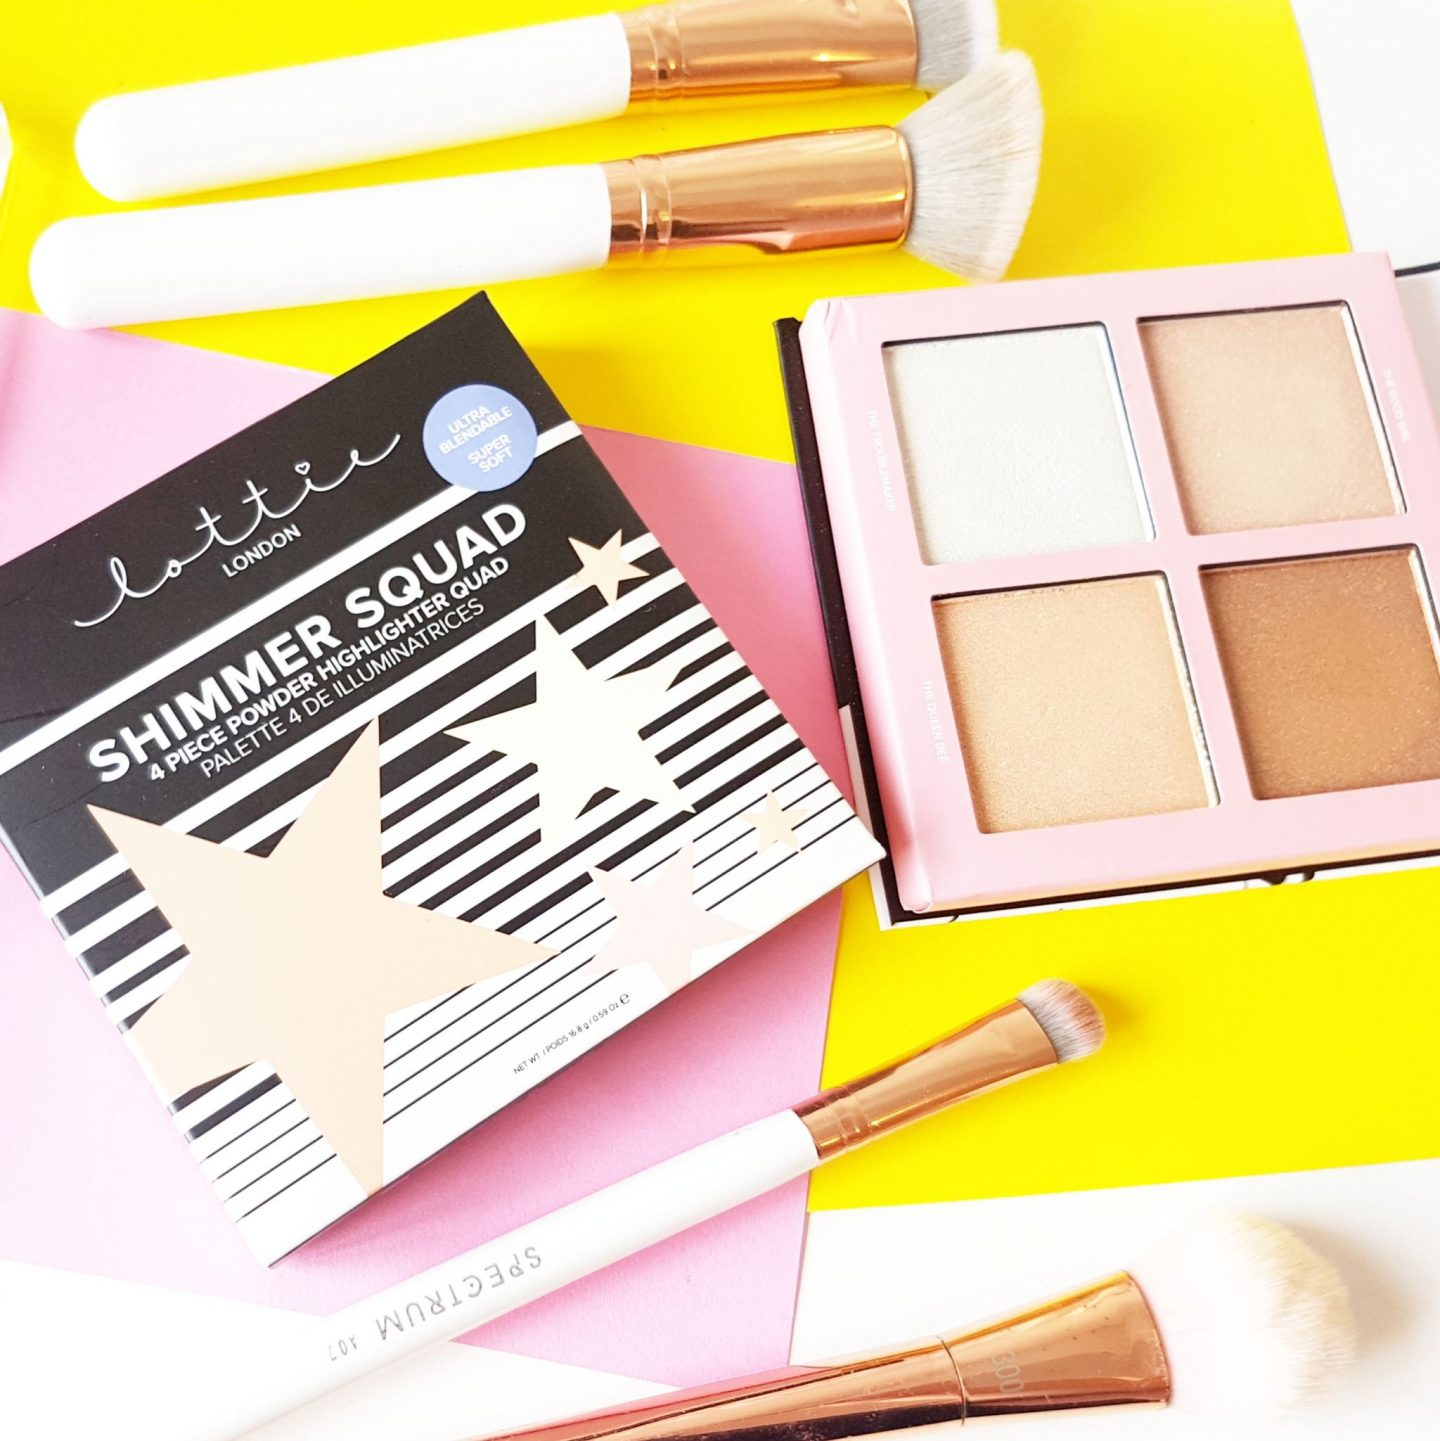 Lottie London Shimmer Squad Highlighter Quad | Review & Swatches